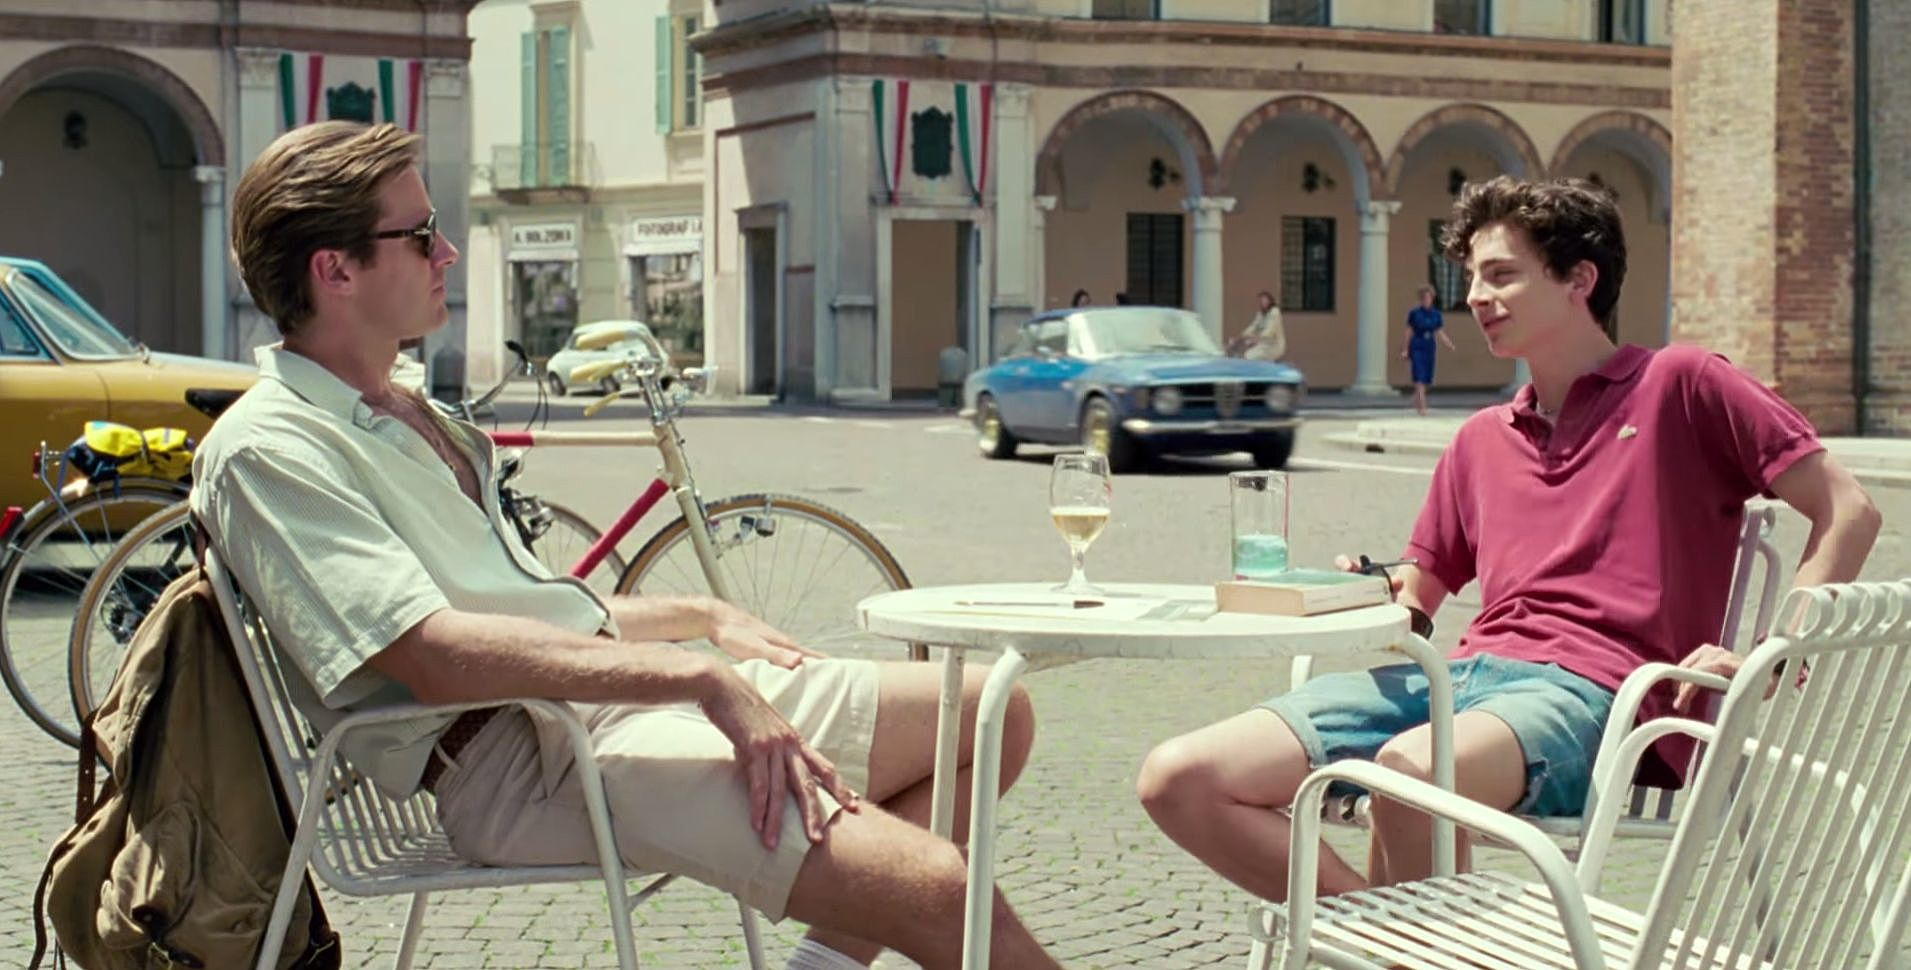 'Call Me By Your Name' (Estreno en España: 26/01/18)